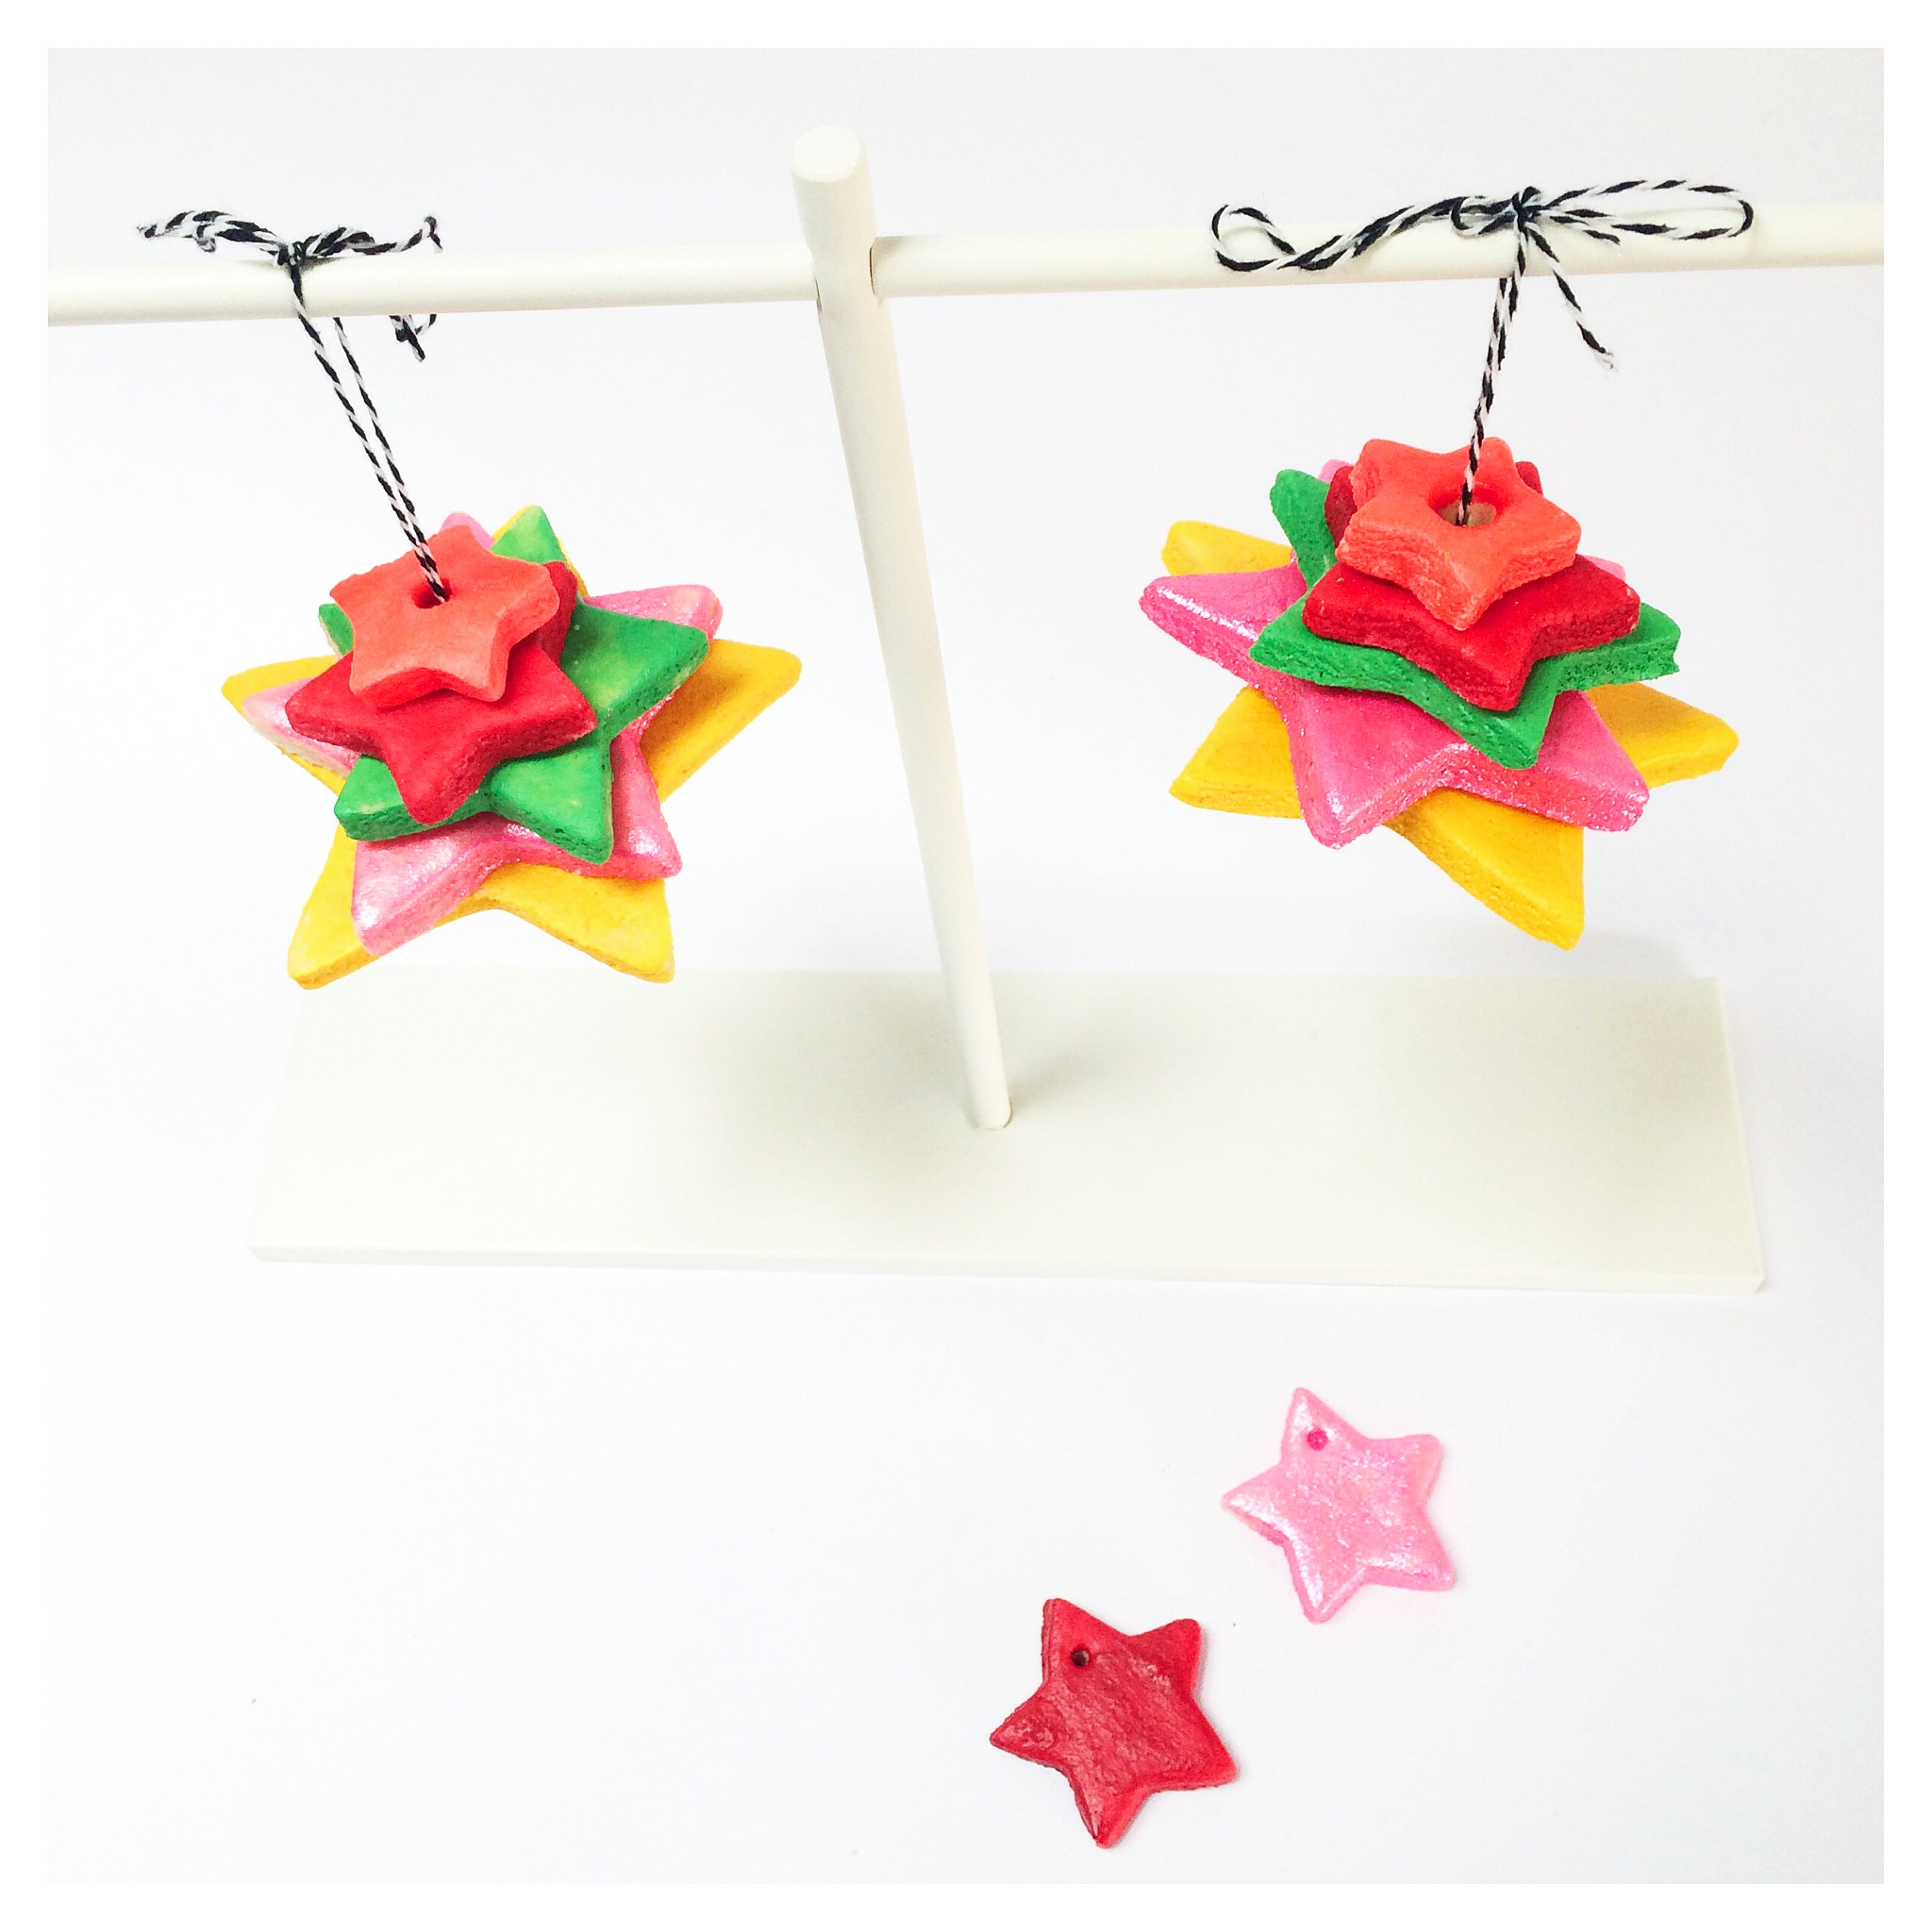 4 Simple Christmas Crafts for Kids